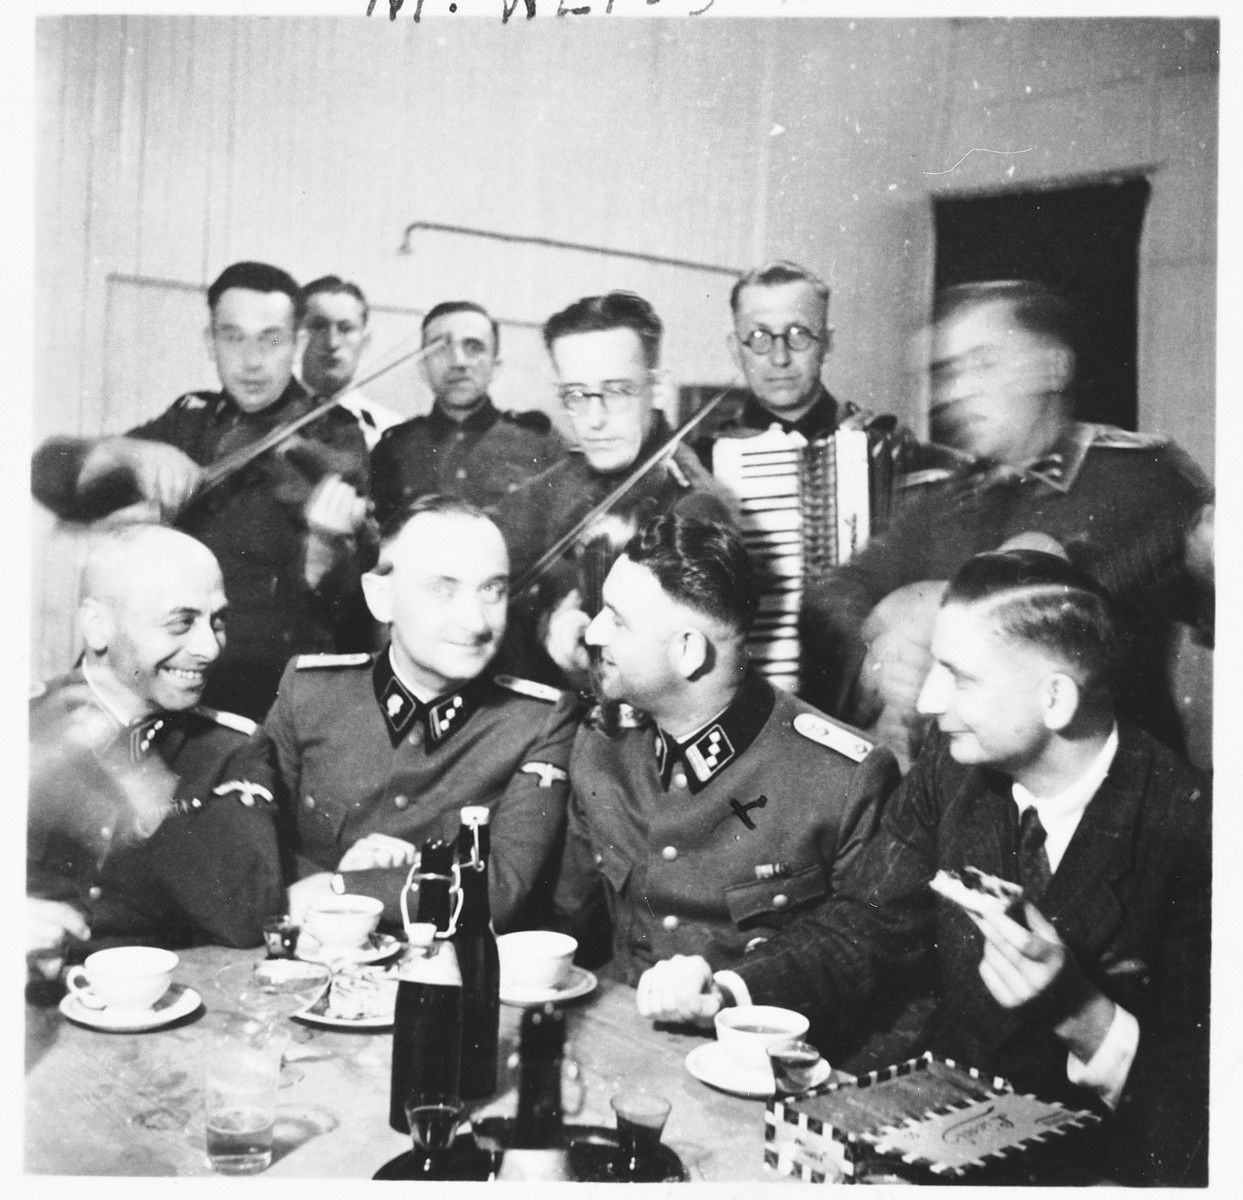 A group of SS officers gather together for a celebration [probably in Dachau].  Pictured sitting second from the right is Martin Gottfried Weiss.